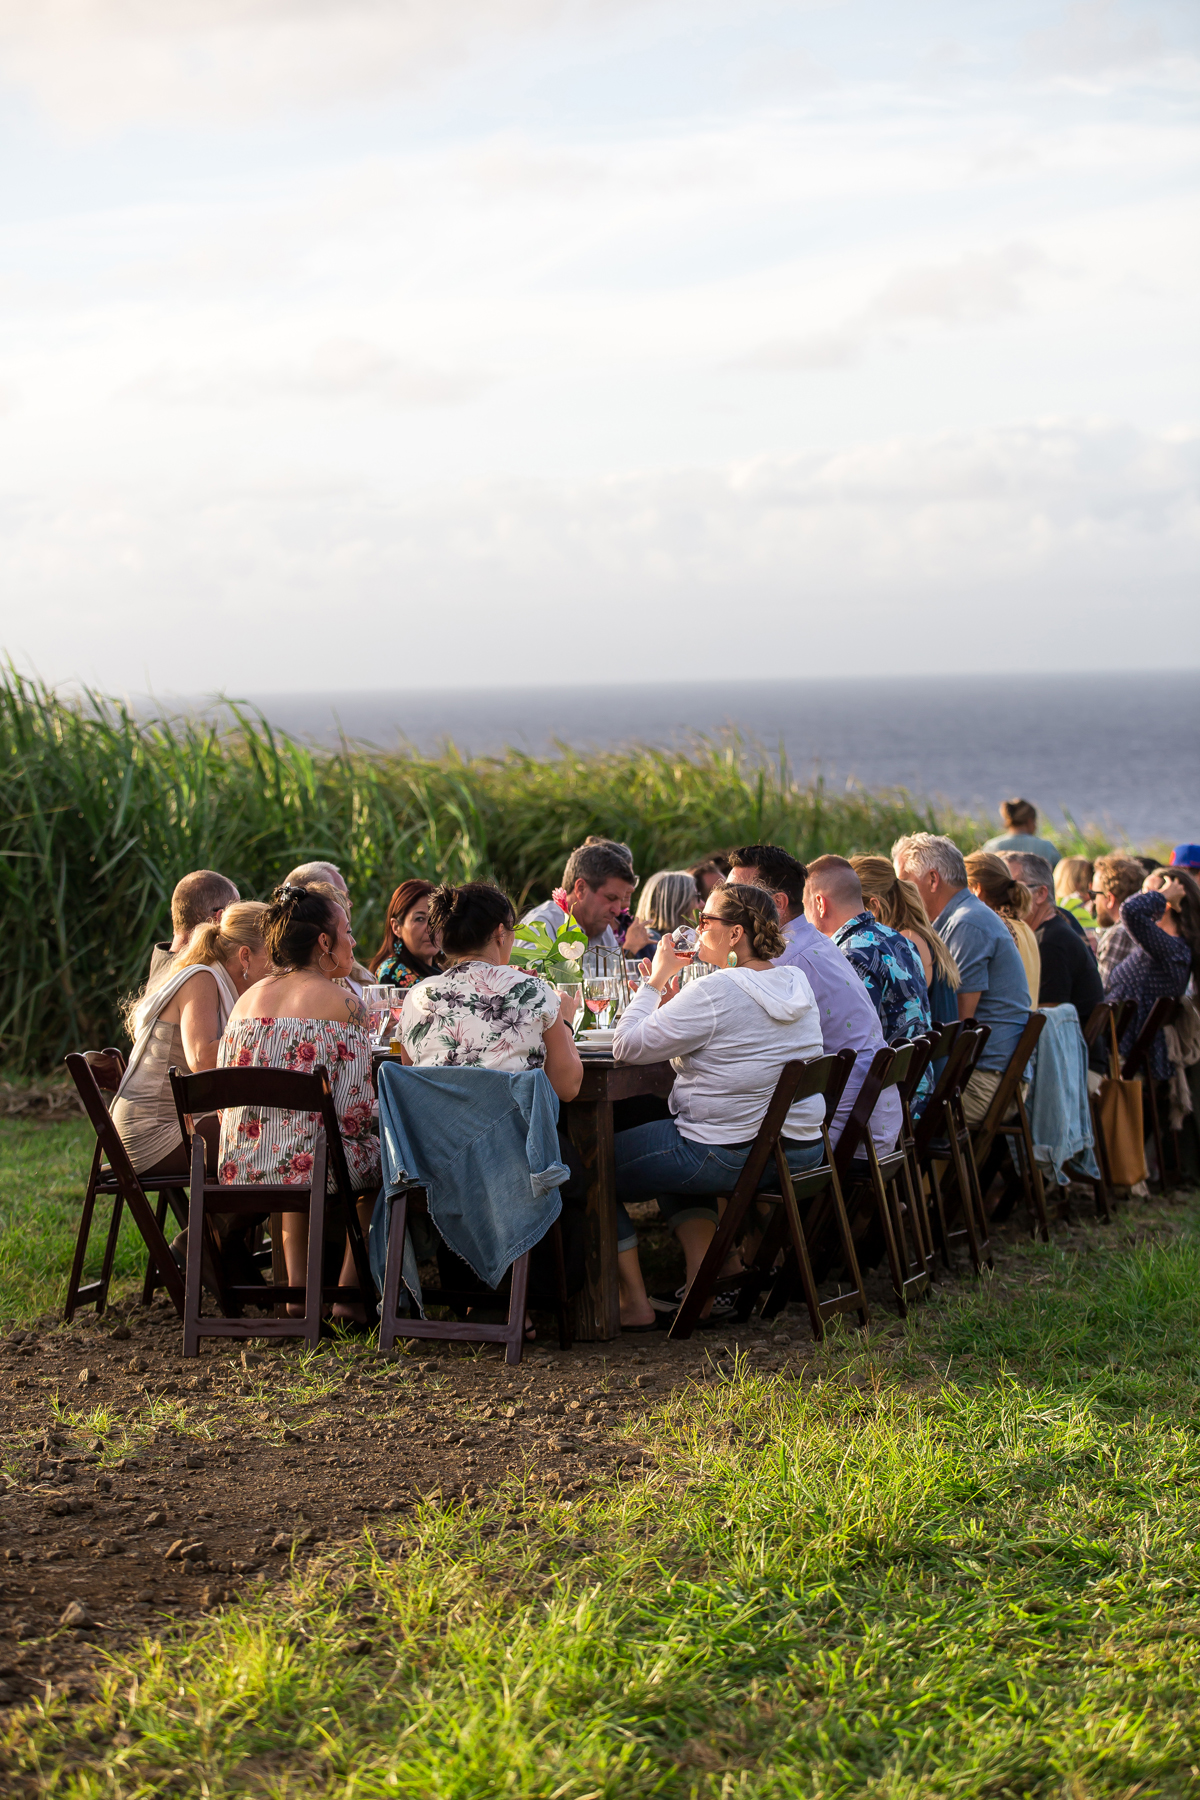 SecretSupper_Hawaii_March2019_0113_photocreditCarlyDiaz.jpg